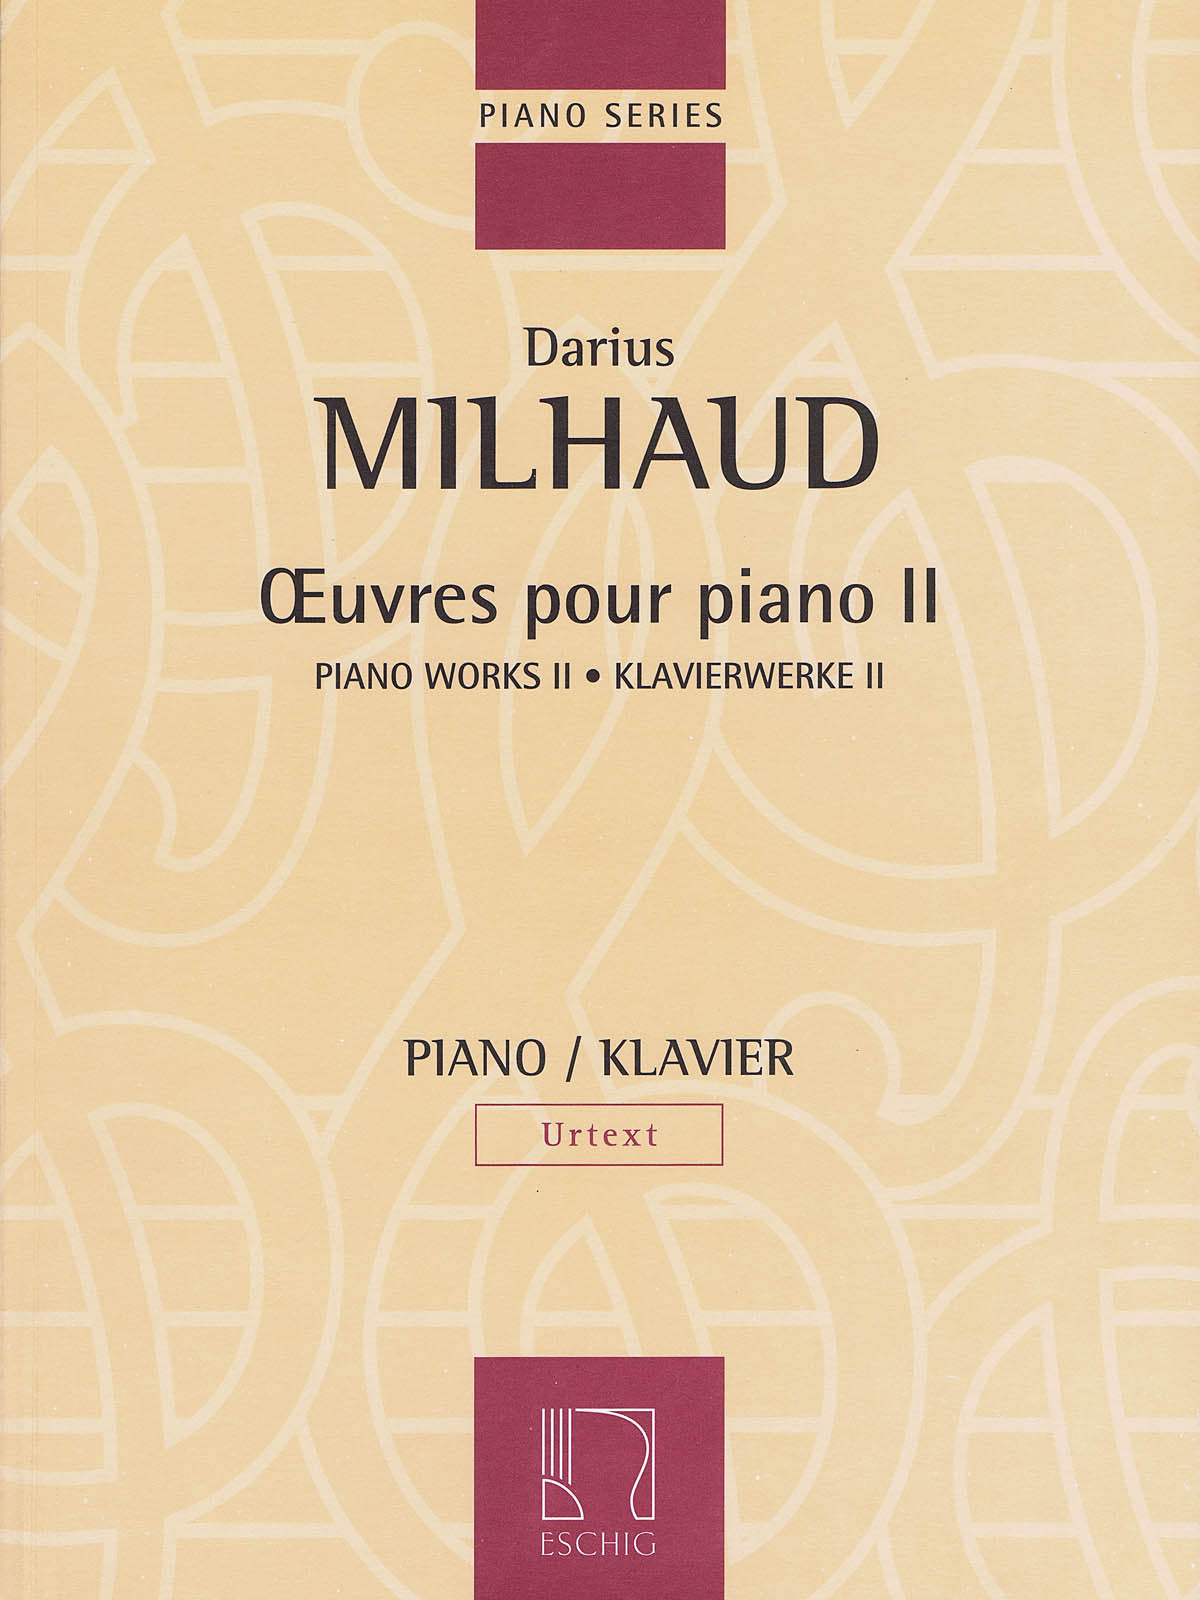 Milhaud: Piano Works, Volume II